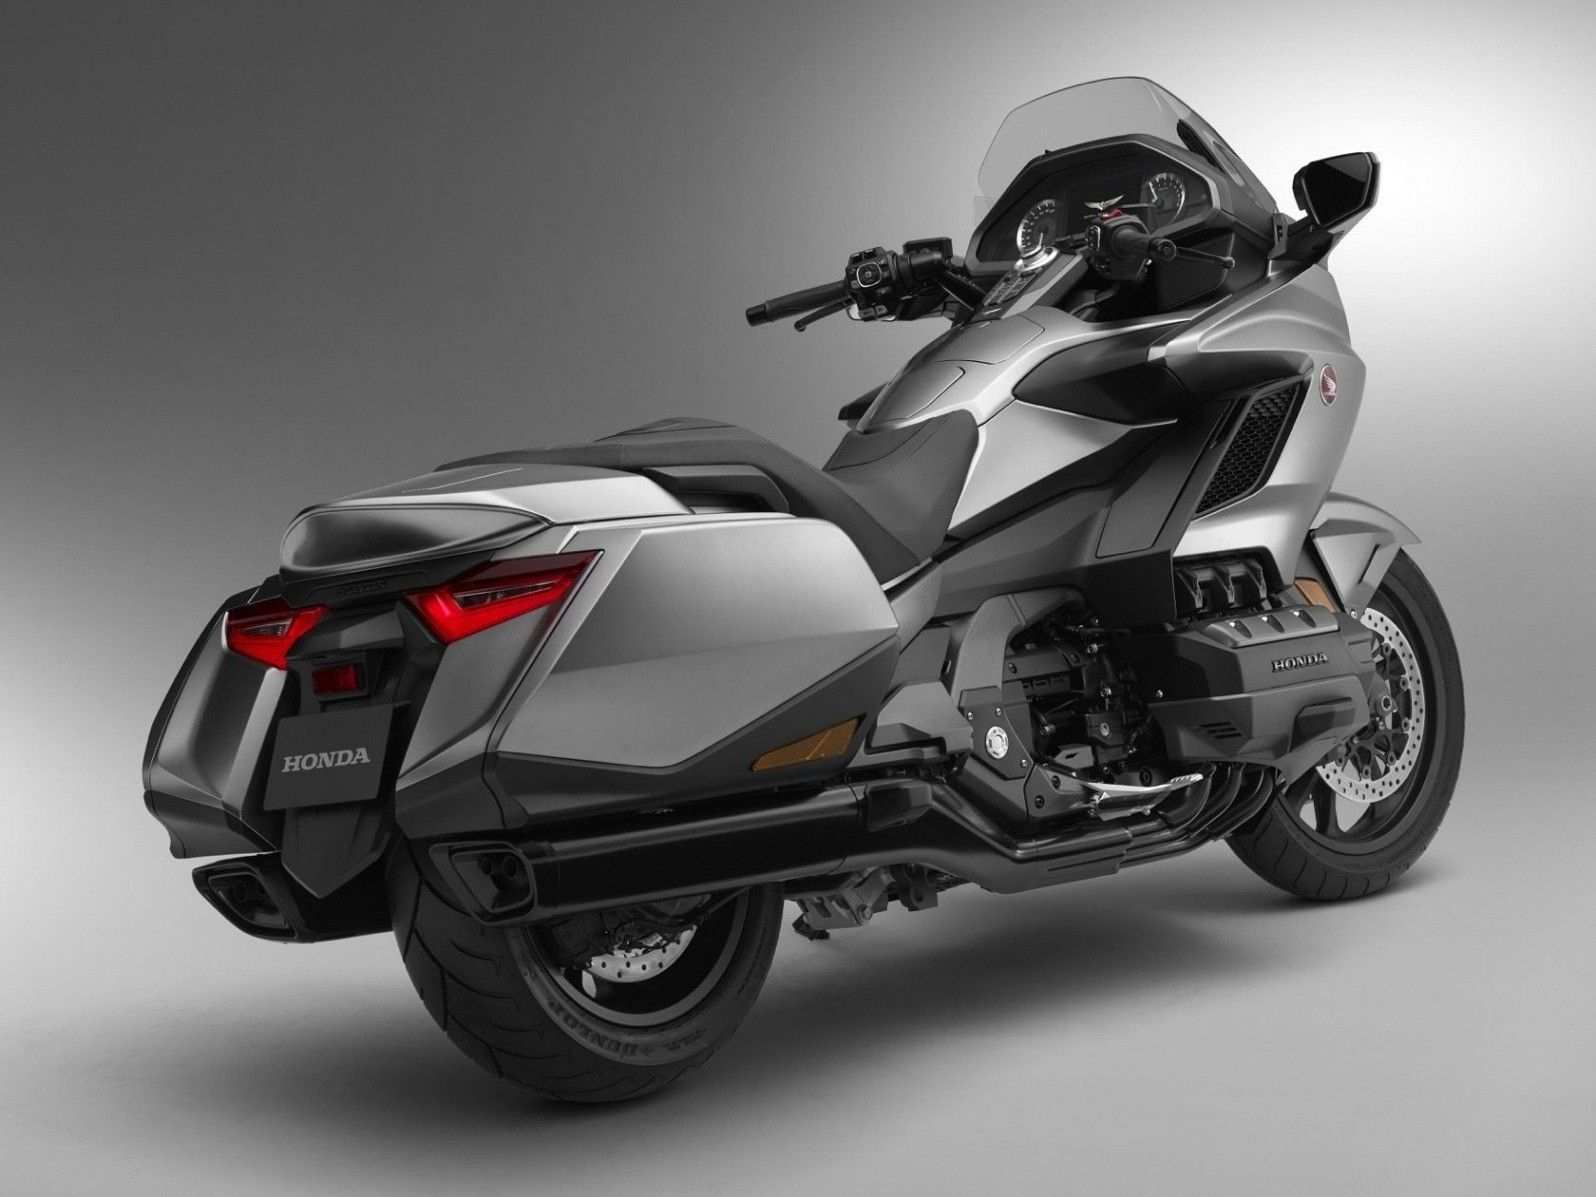 37 Great 2019 Honda Goldwing Changes Picture by 2019 Honda Goldwing Changes